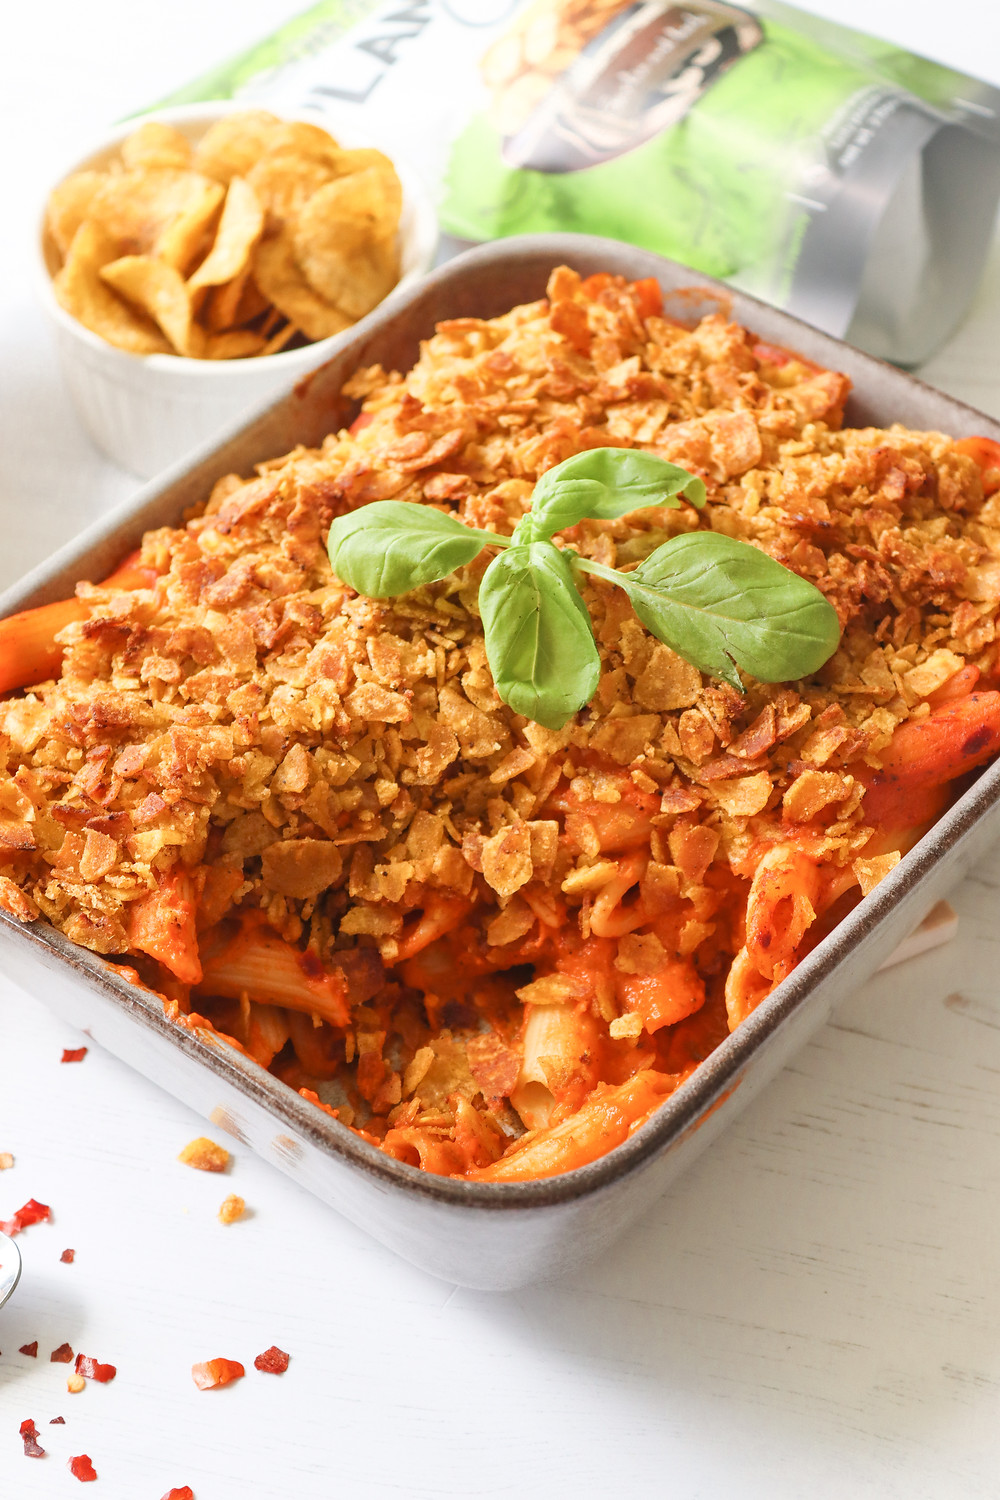 Food Photography by nb: social – Vegan Creamy Tomato Pasta with Crispy Plantain Topping using Mr Plantain's Garlic & Herbs Crisps